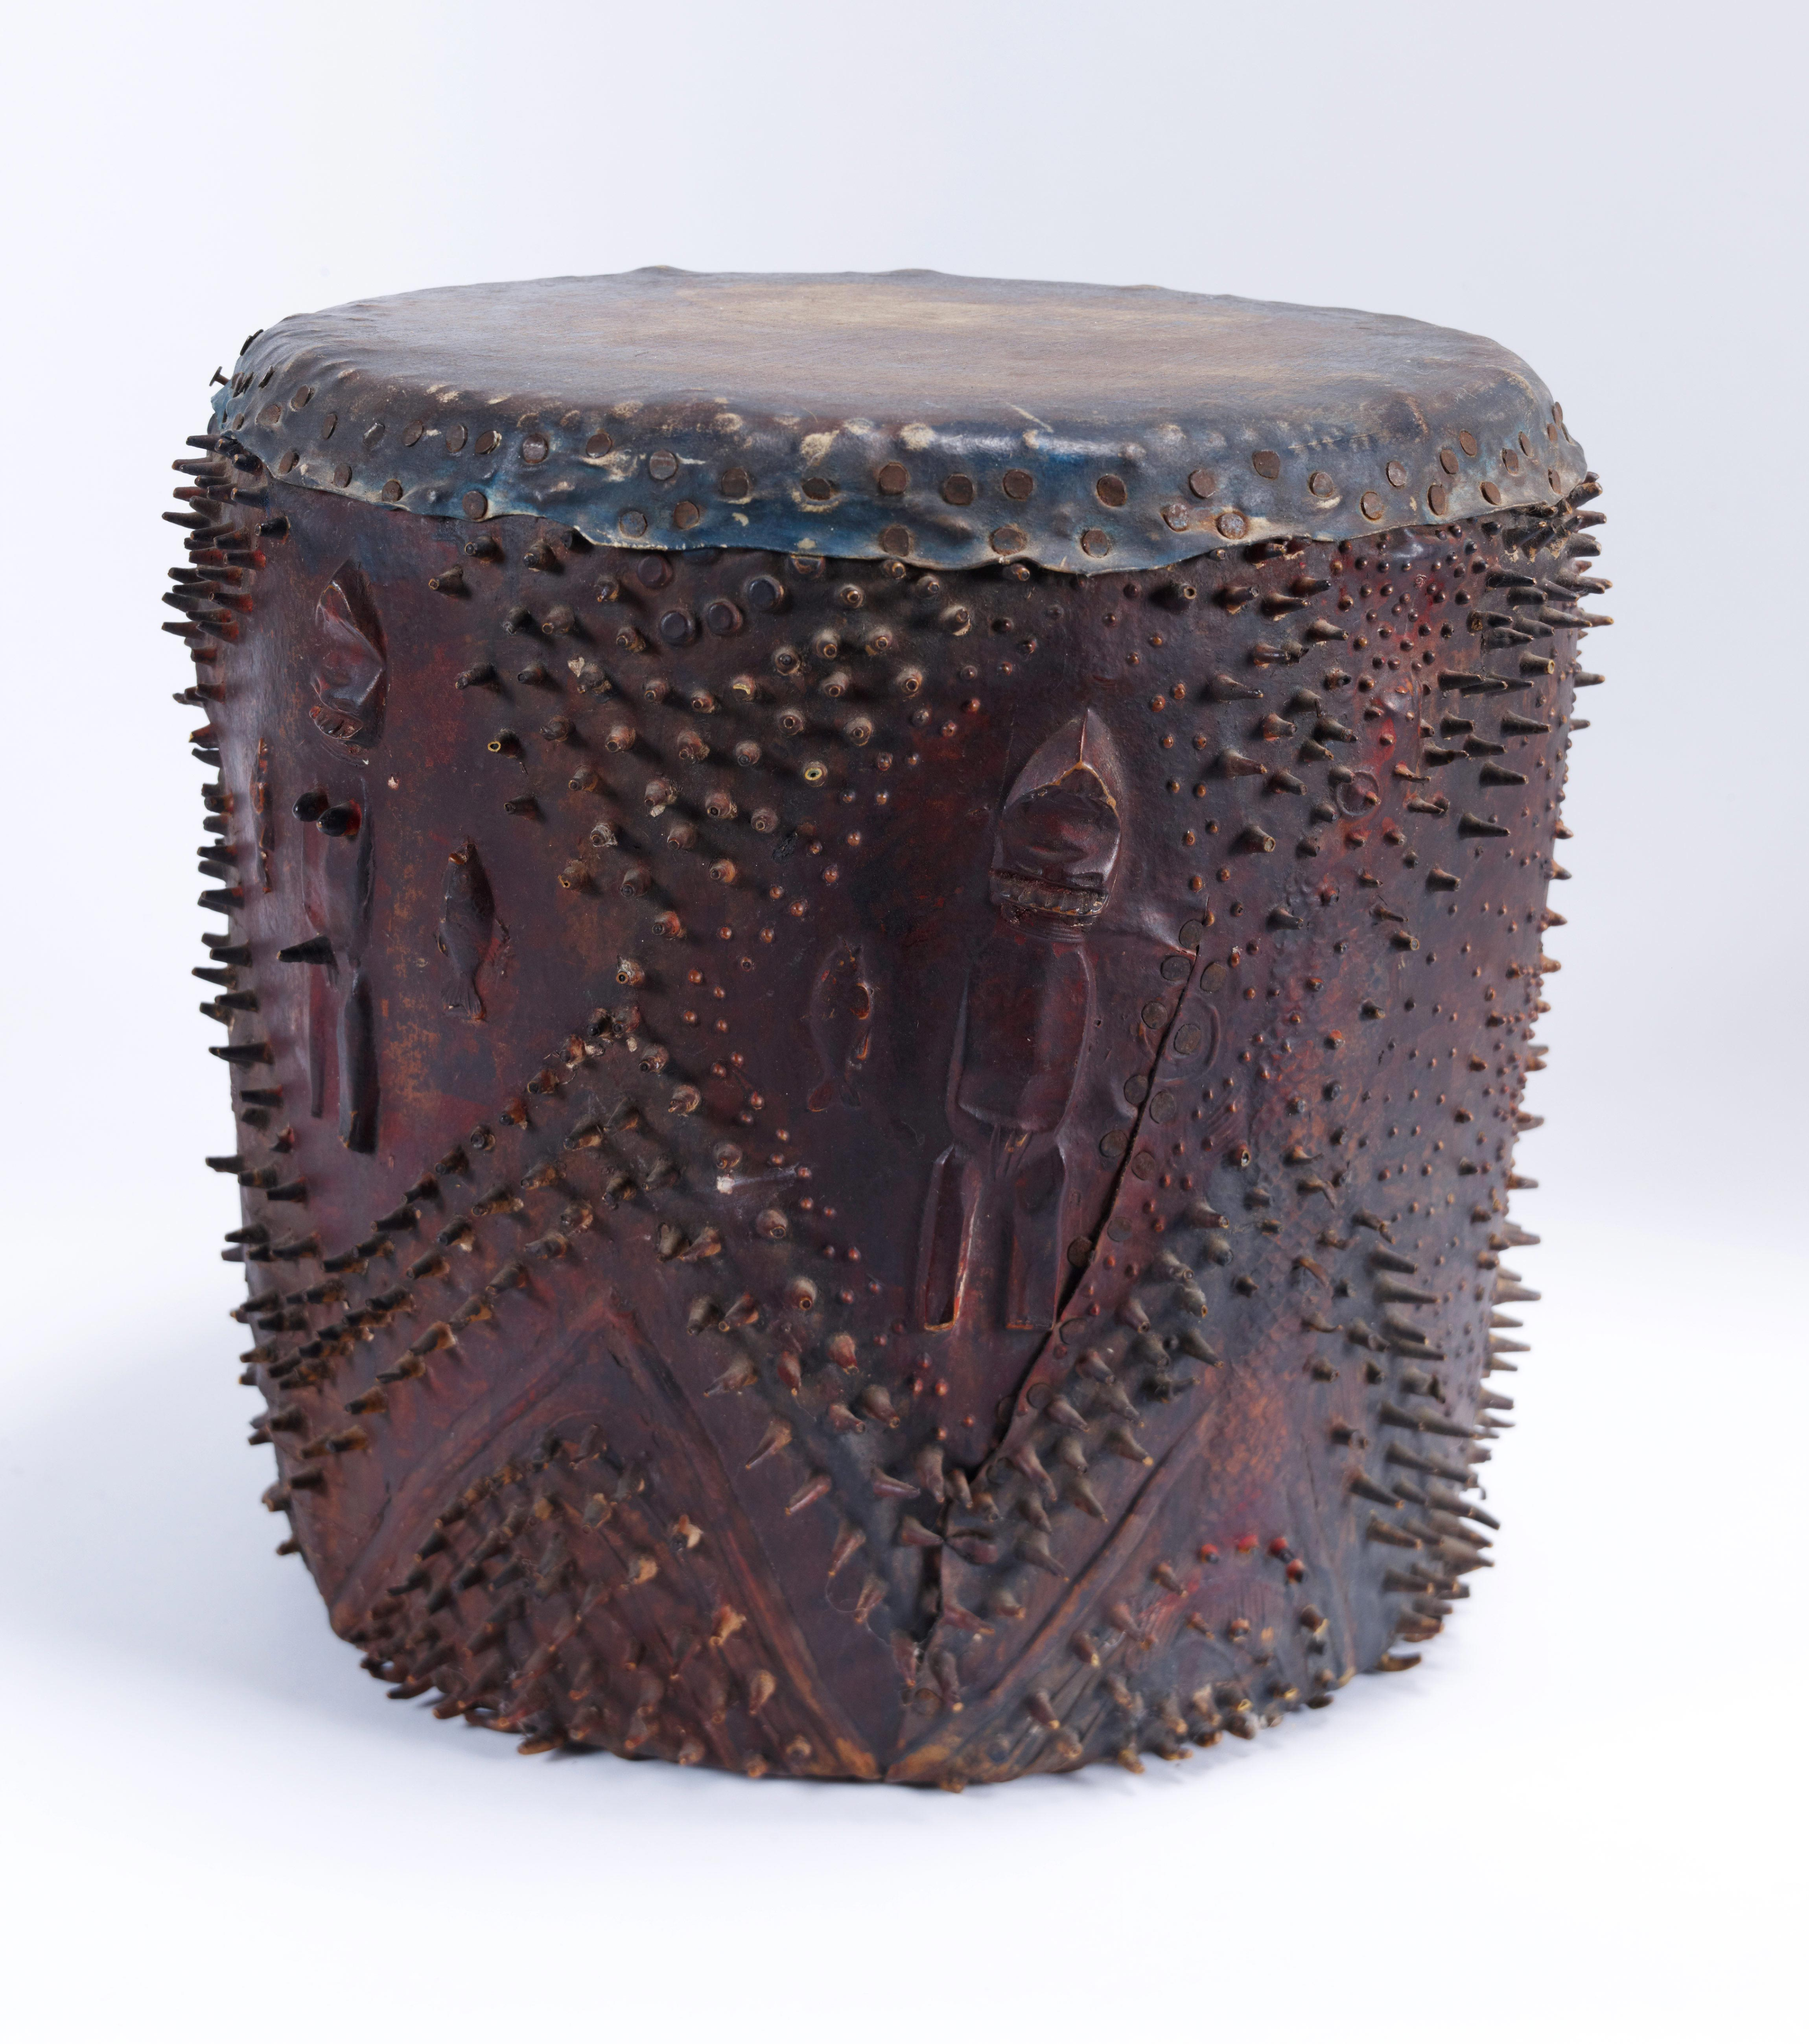 Drum, by Houston Conwill, c.1975-1980